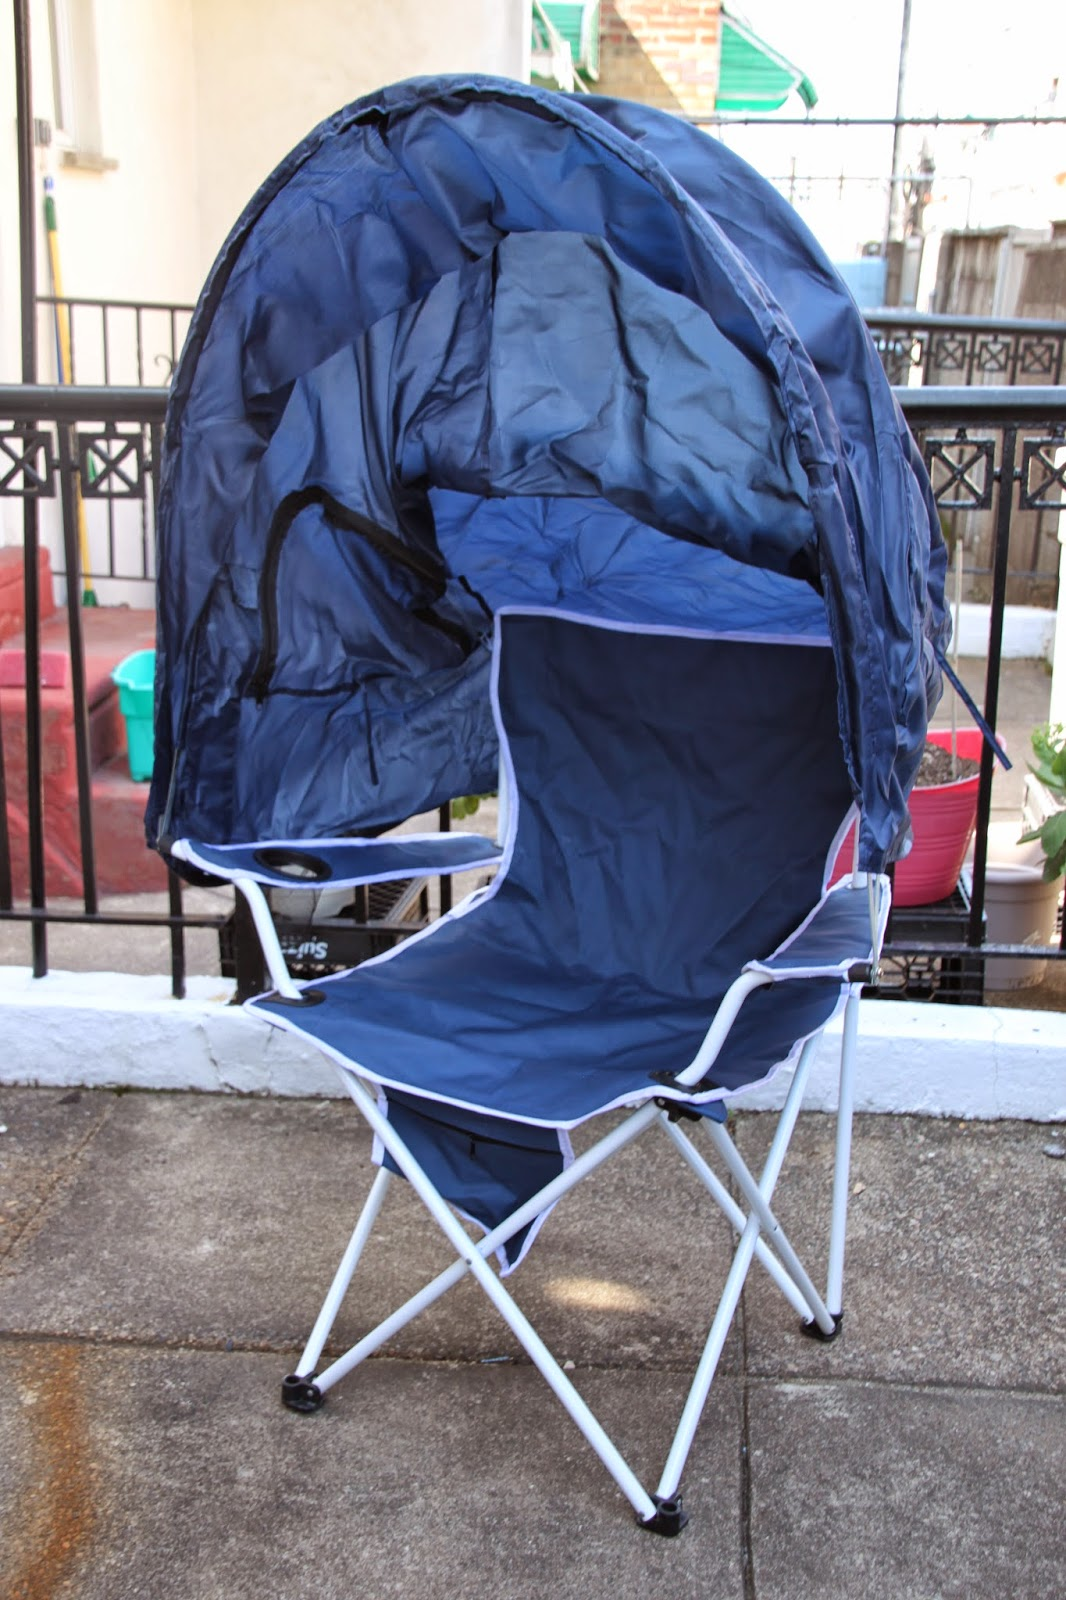 Camping Chairs With Canopy Susan 39s Disney Family Shop Brylanehome For Furniture